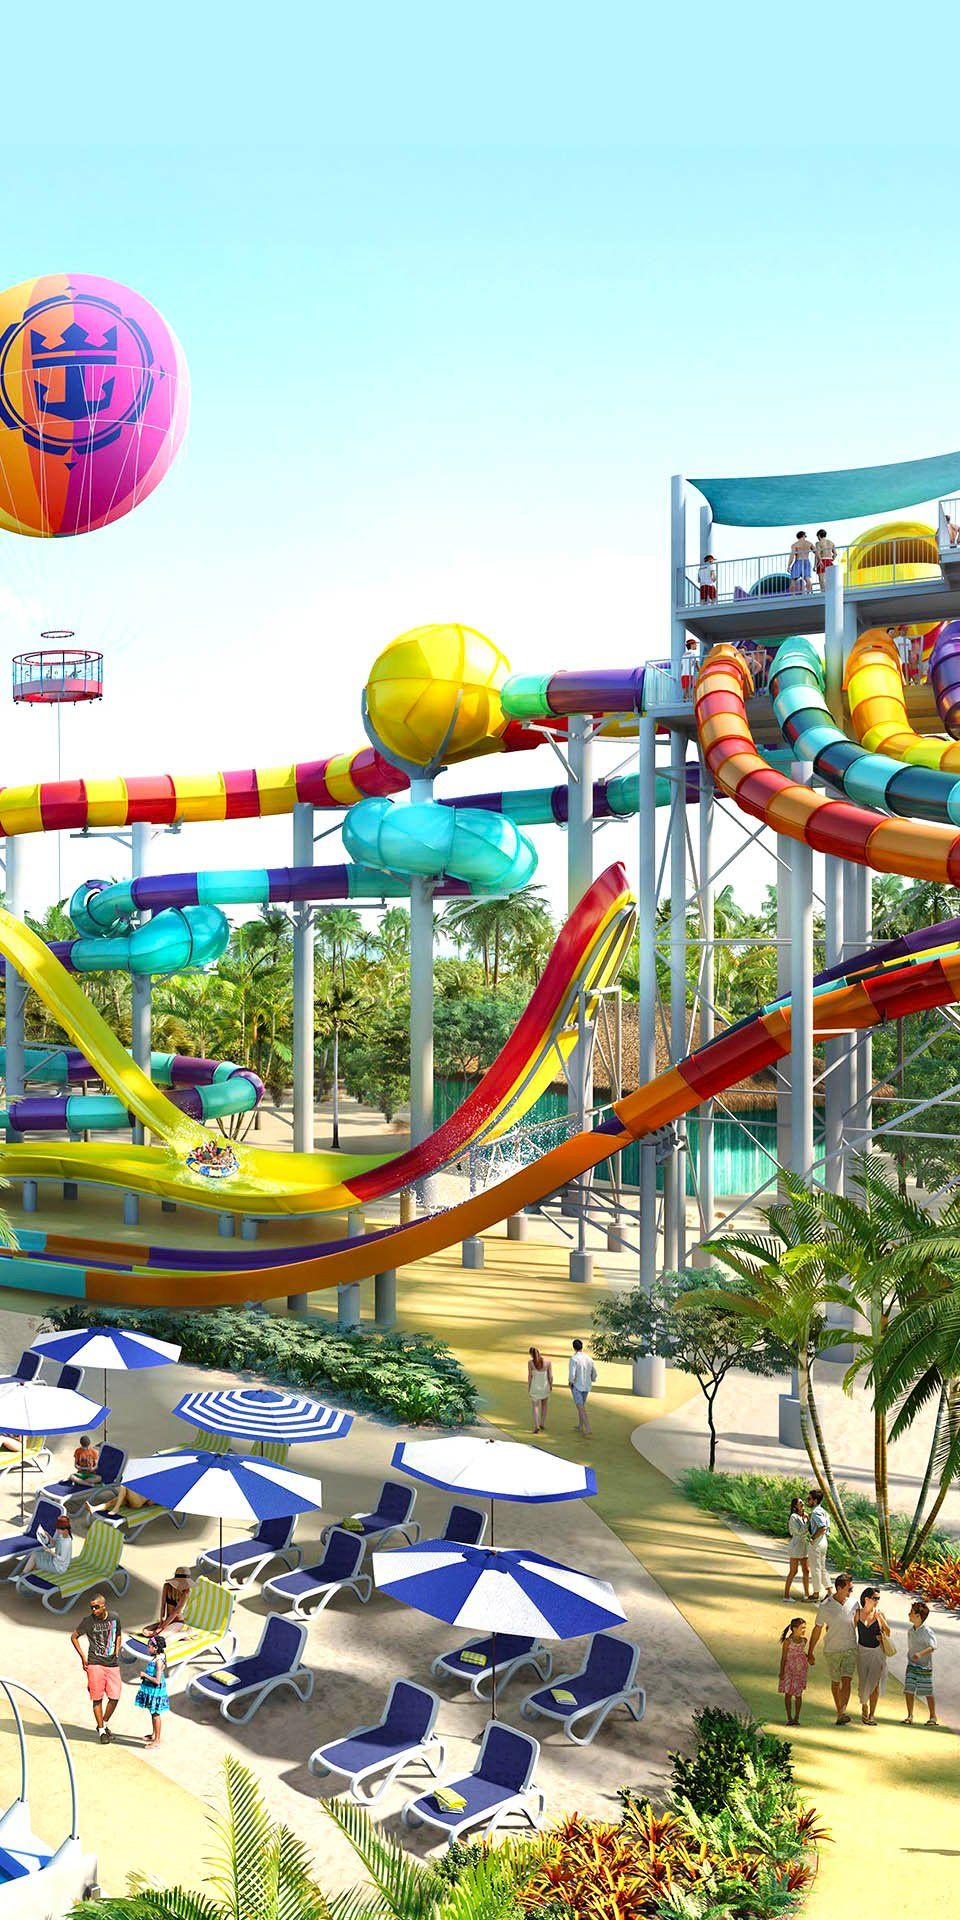 d70e1285d CocoCay, Bahamas | Share thrills as you and your crew take on six winding  slides at Family Tower. Check out all the thrills and chills awaiting at  Perfect ...